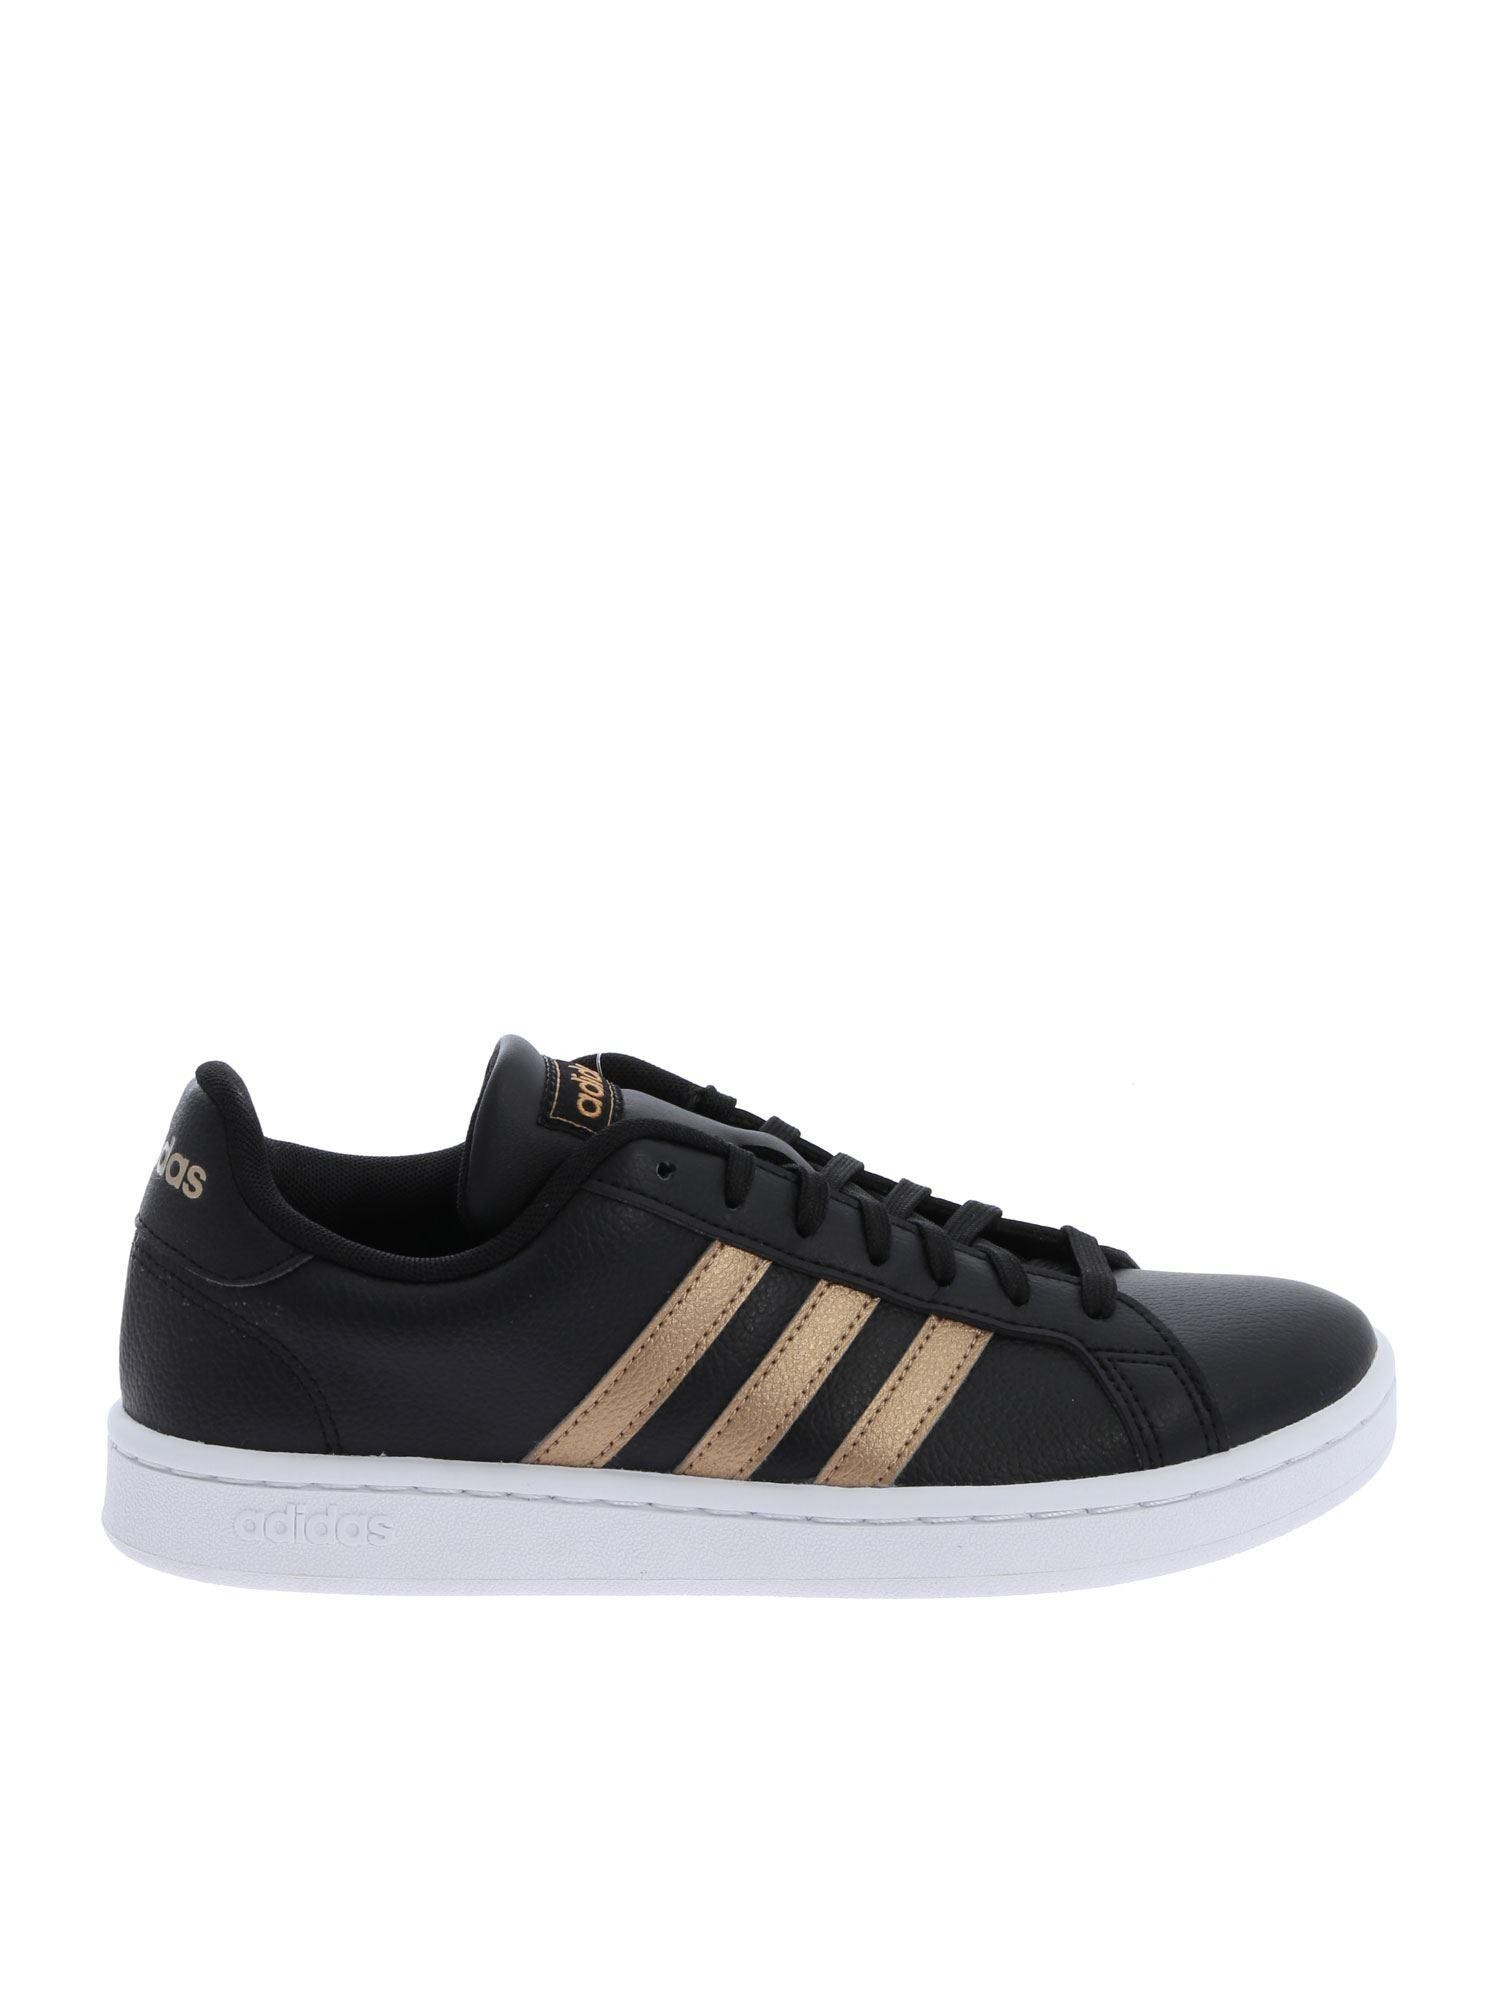 adidas Leather Black And Gold Grand